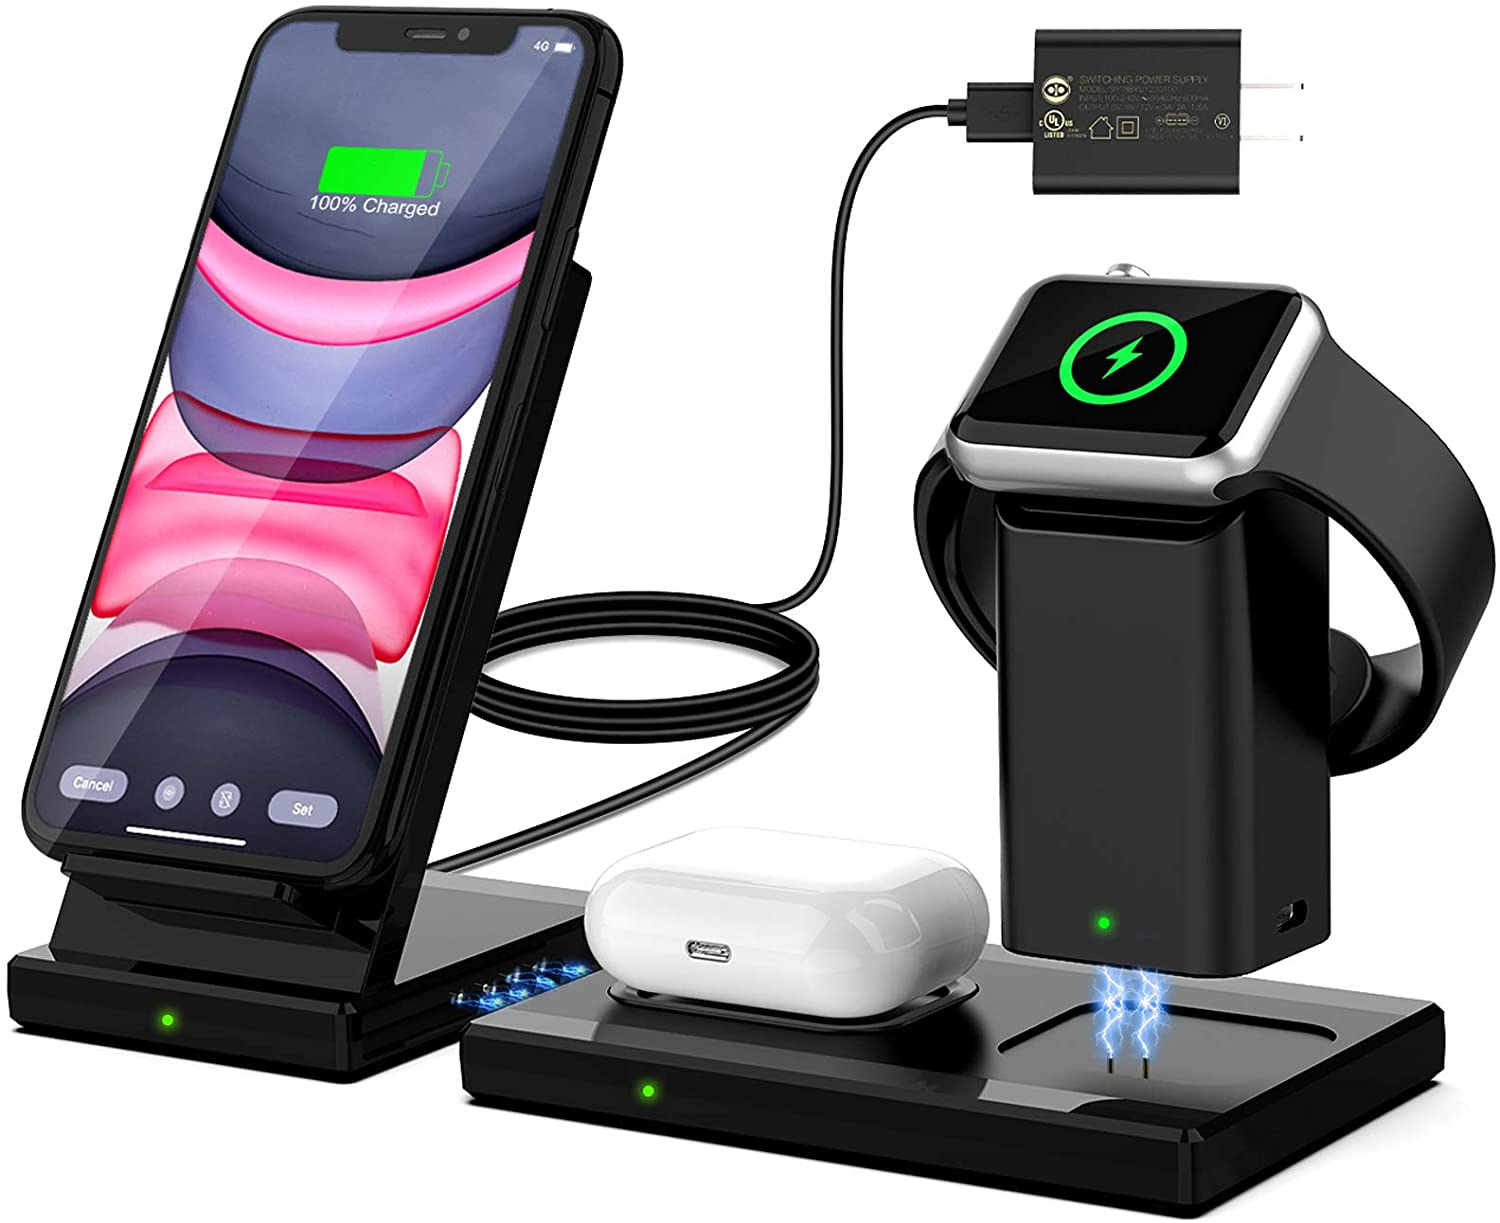 Wireless Charger, WisFox 3 in 1 Wireless Charging Station for Apple Watch & Airpods, Detachable and Magnetic Wireless Charging Stand Dock for iPhone 12/11/11 Pro Max/X/XS/XR/Xs Max/8/8 Plus(Black)